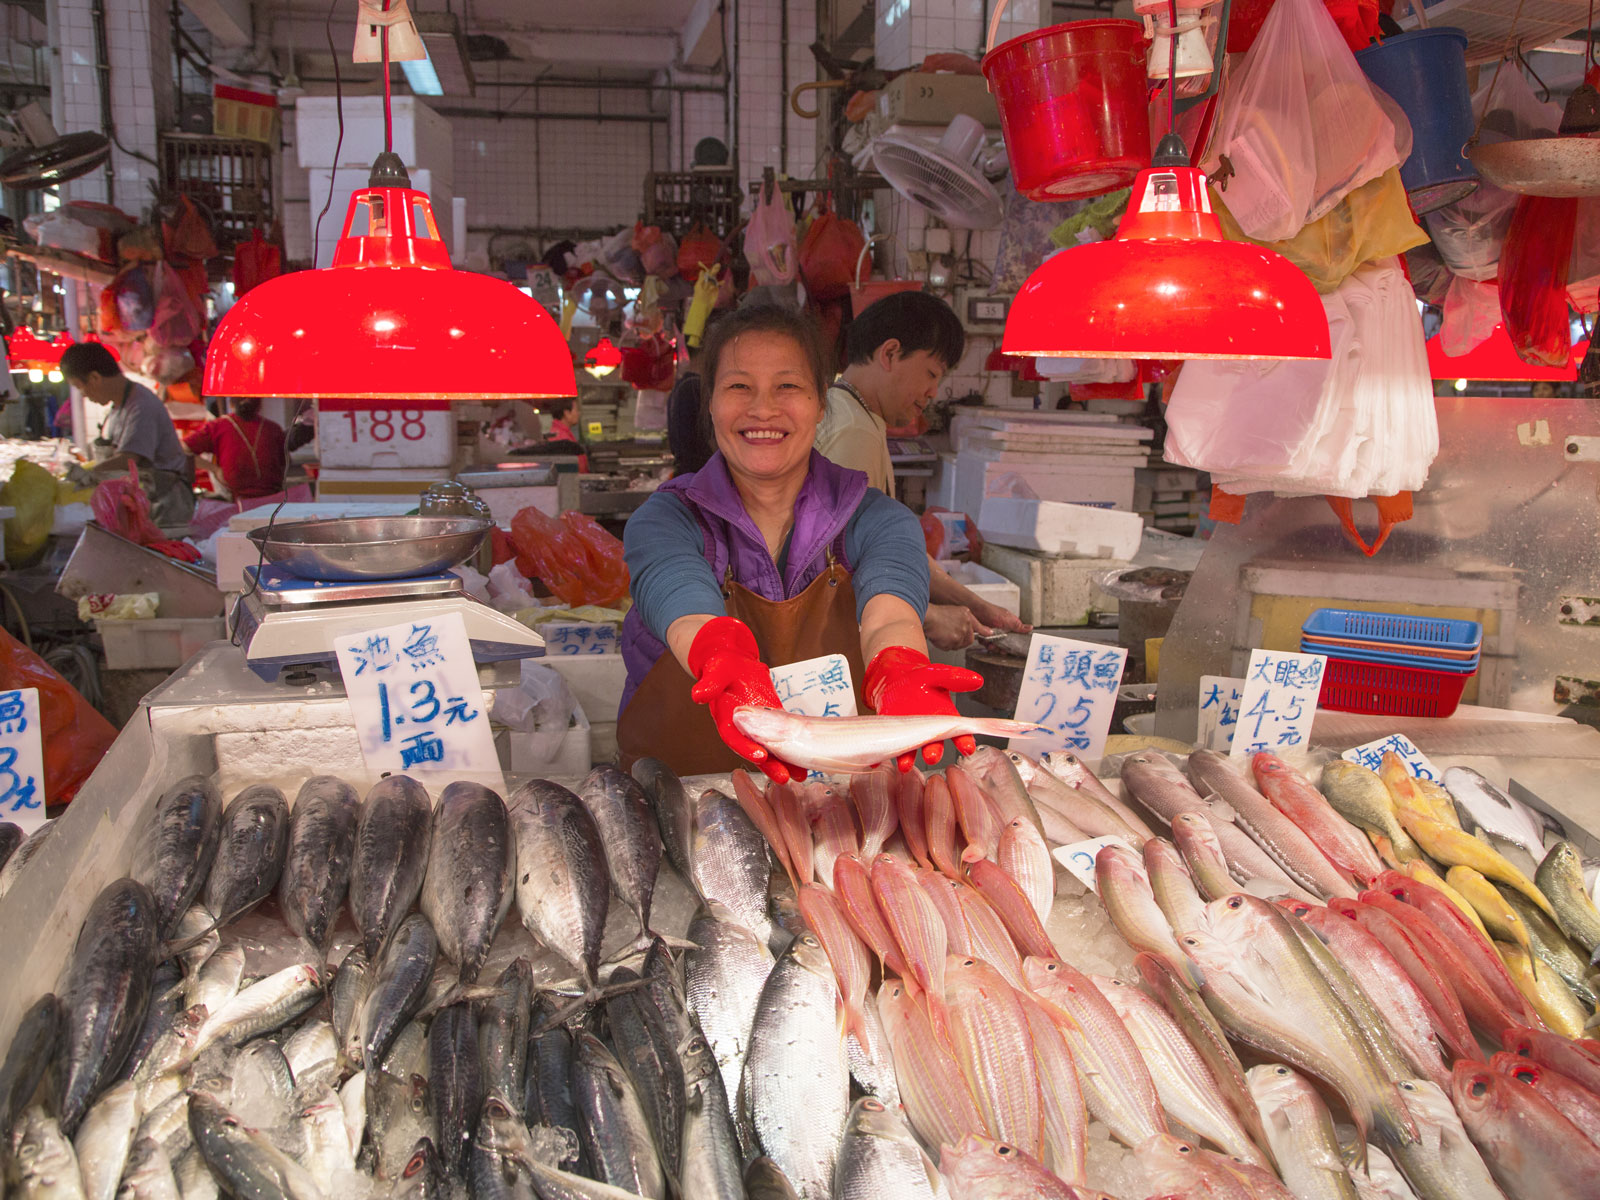 top-chef-macau-red-market-FT-BLOG0319.jpg